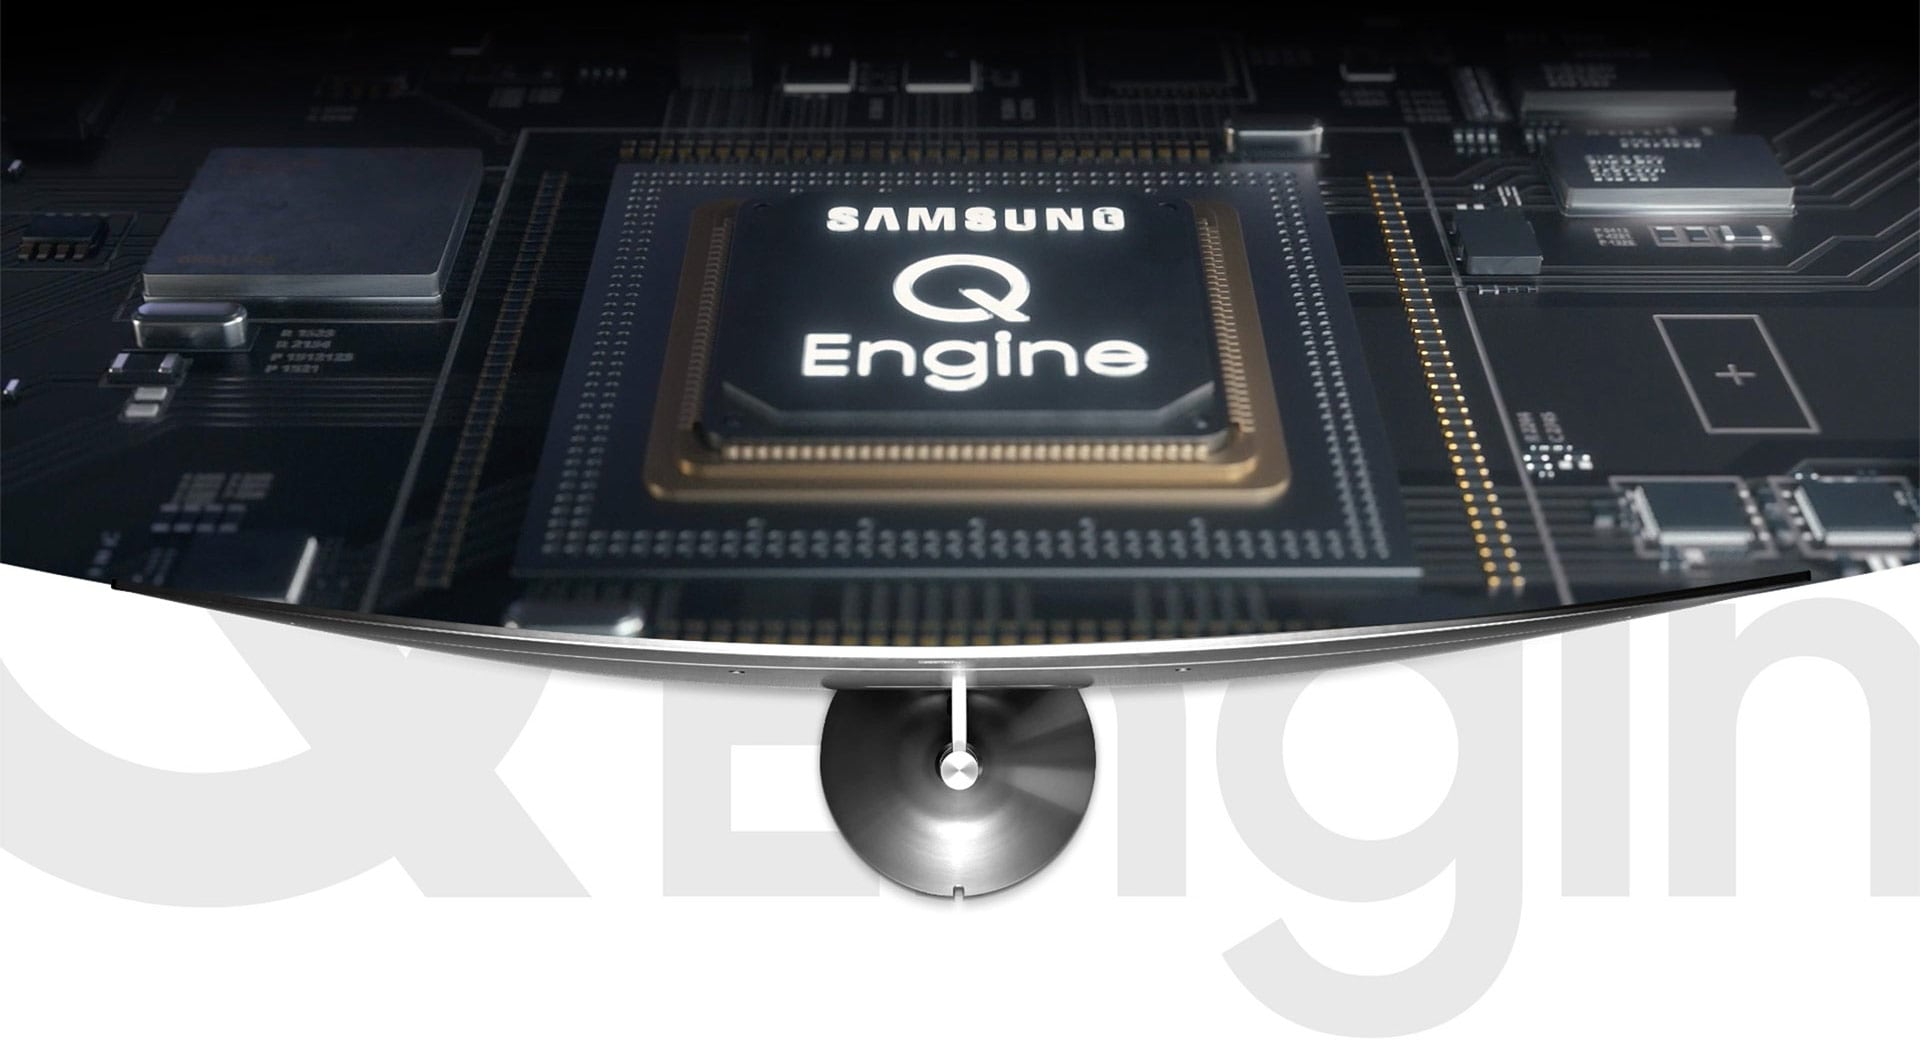 Image of the Q Engine, equipped in the Samsung QLED TV, lighting up as it starts to run.